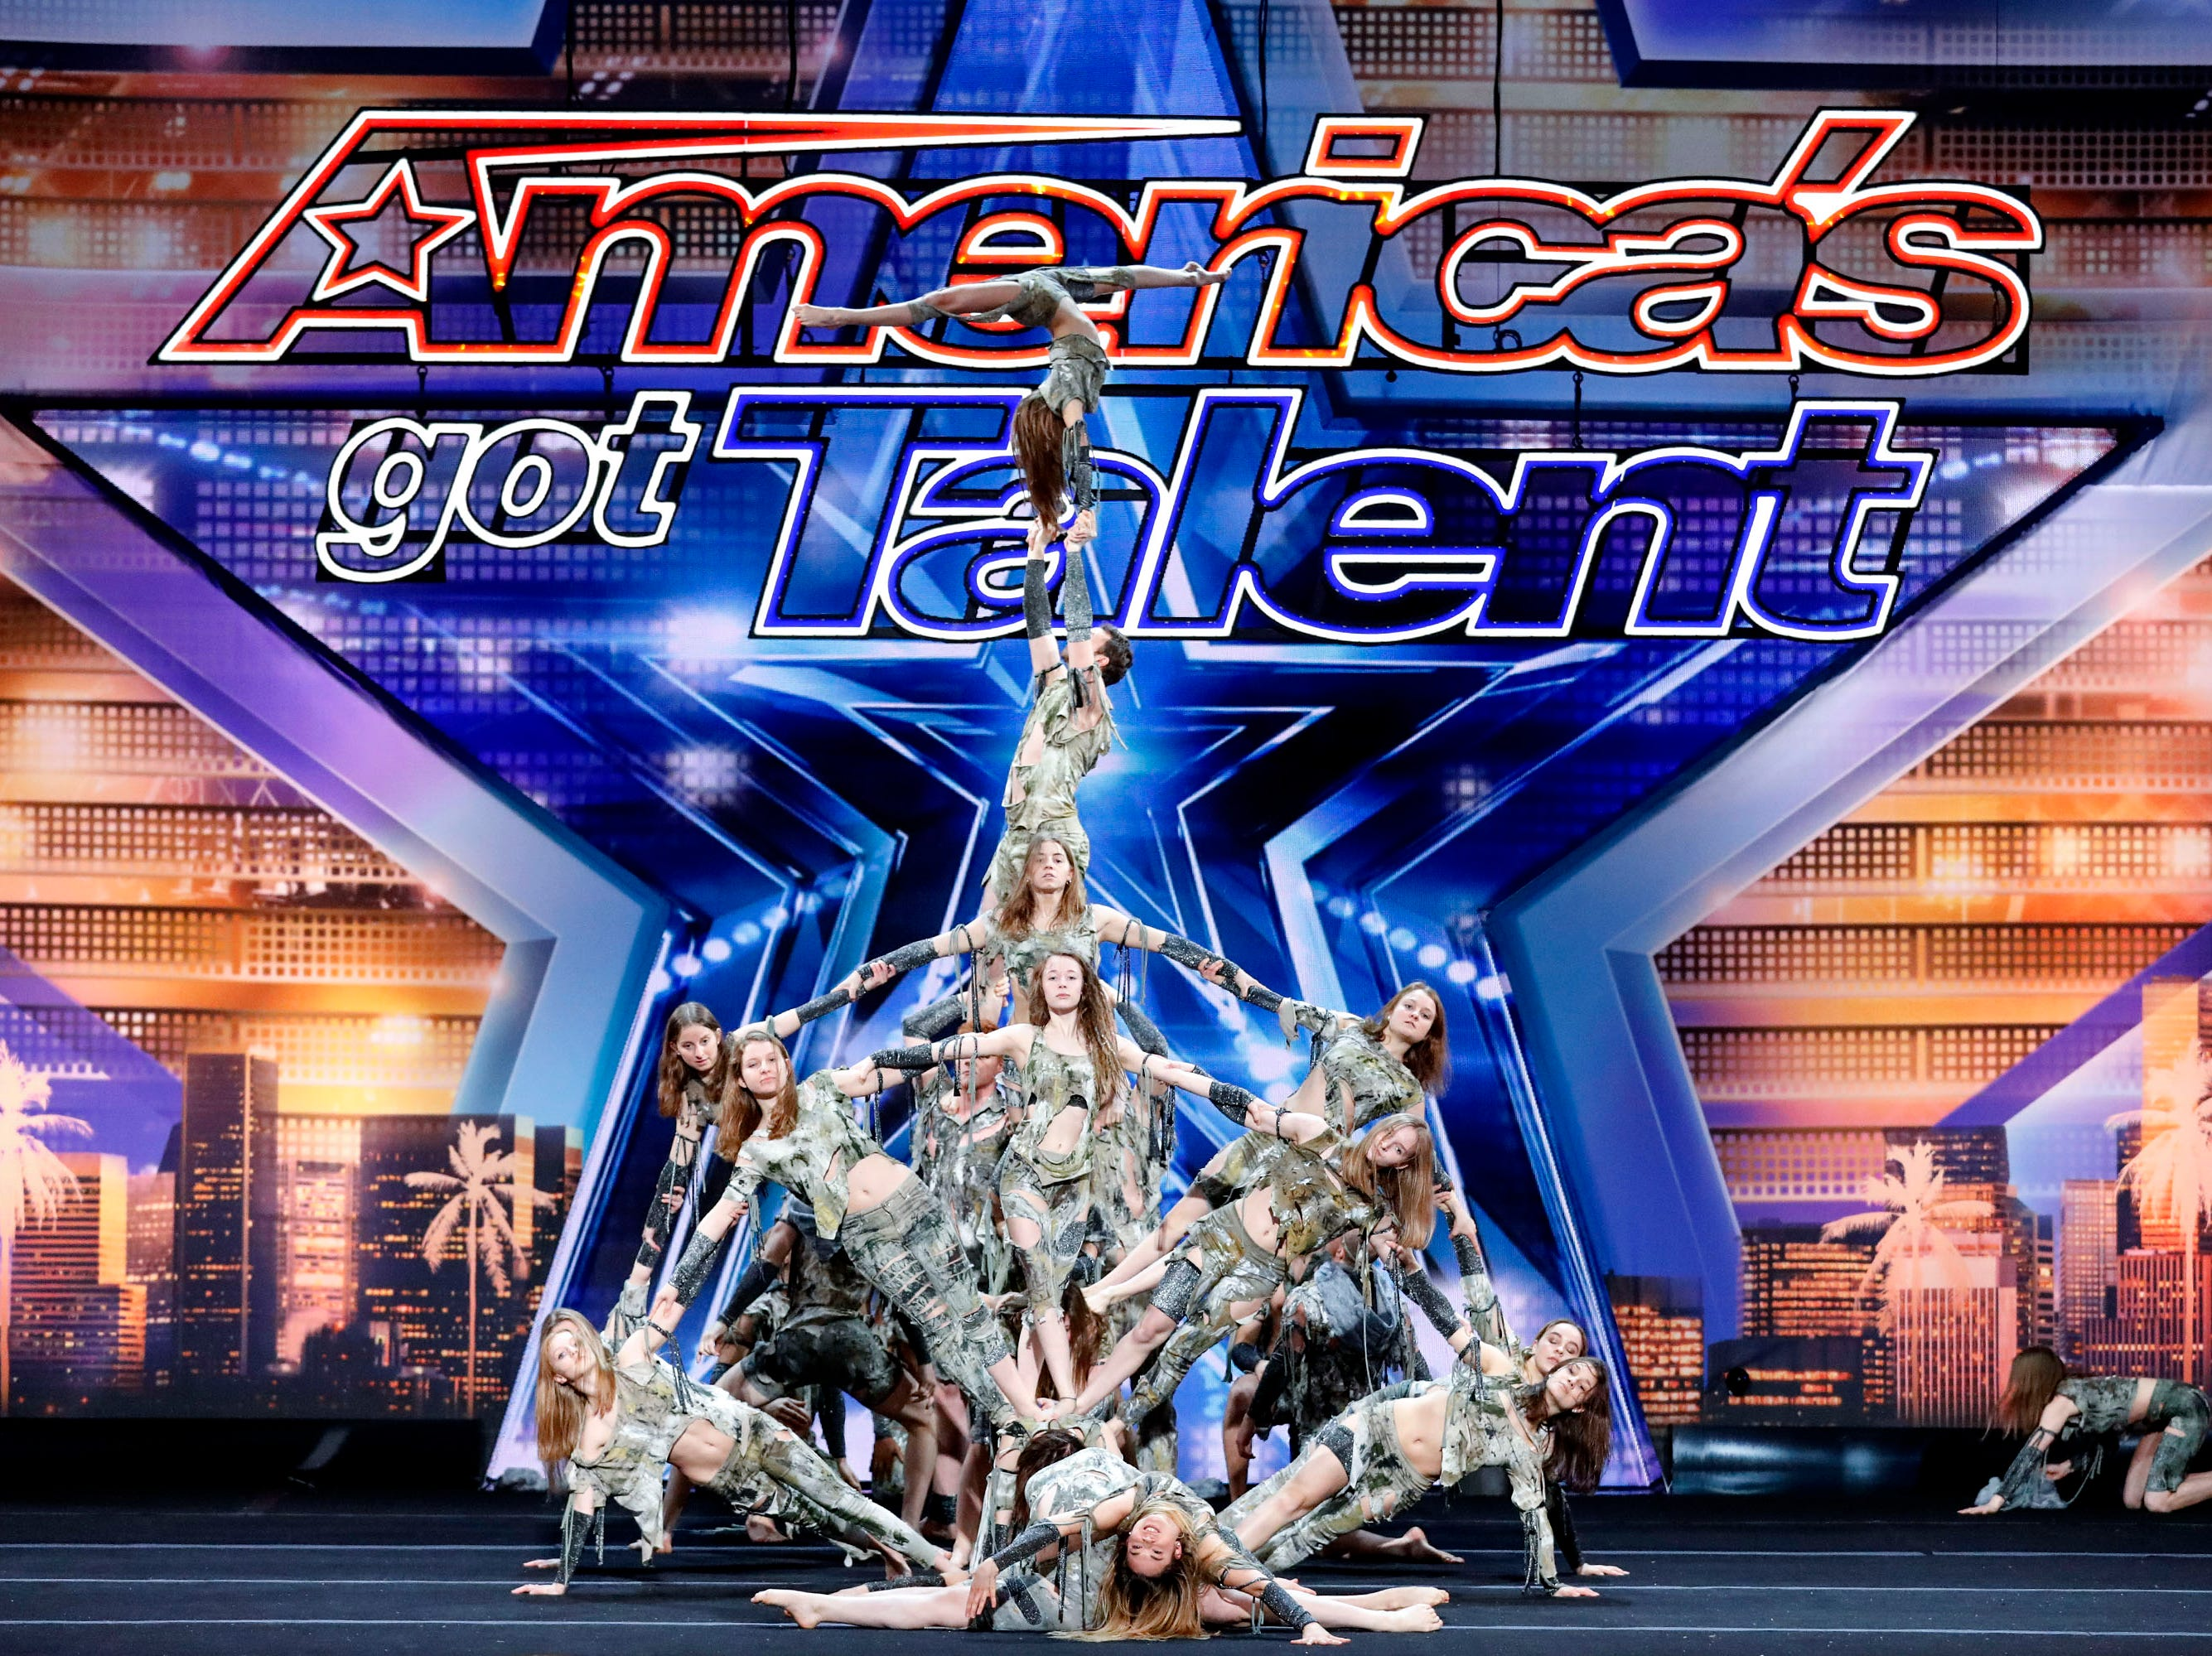 Acrobatic team Zurcaroh earned Tyra Banks's Golden Buzzer